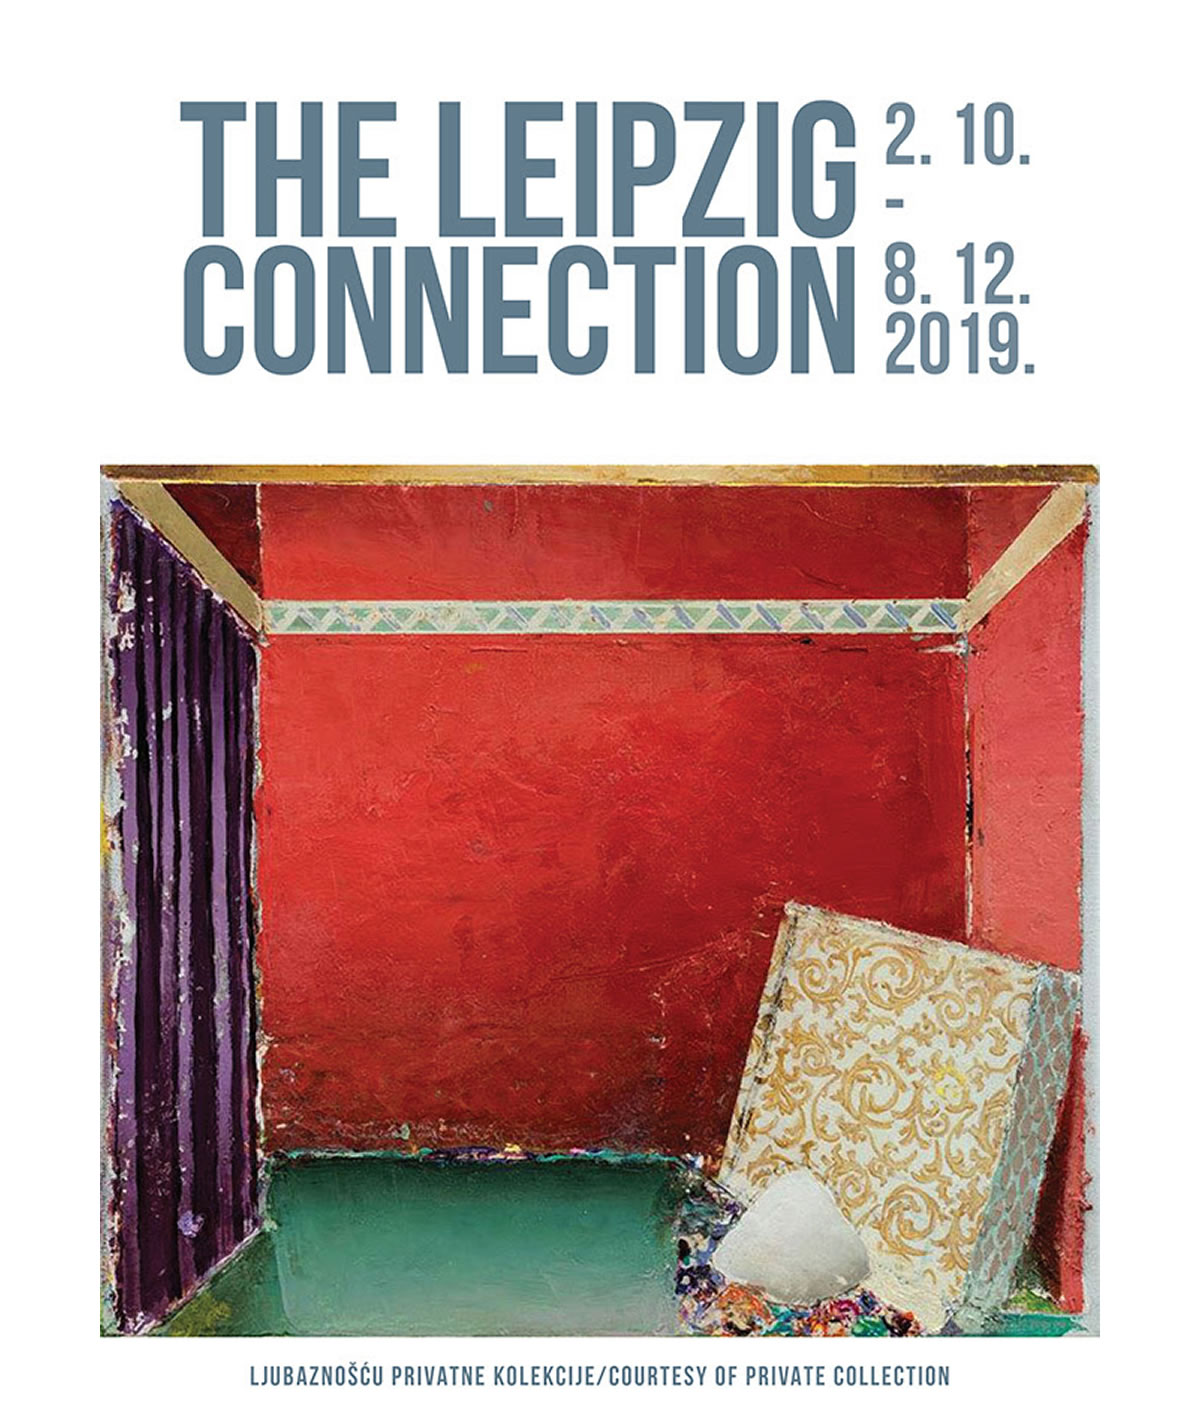 The Leipzig Connection 2019